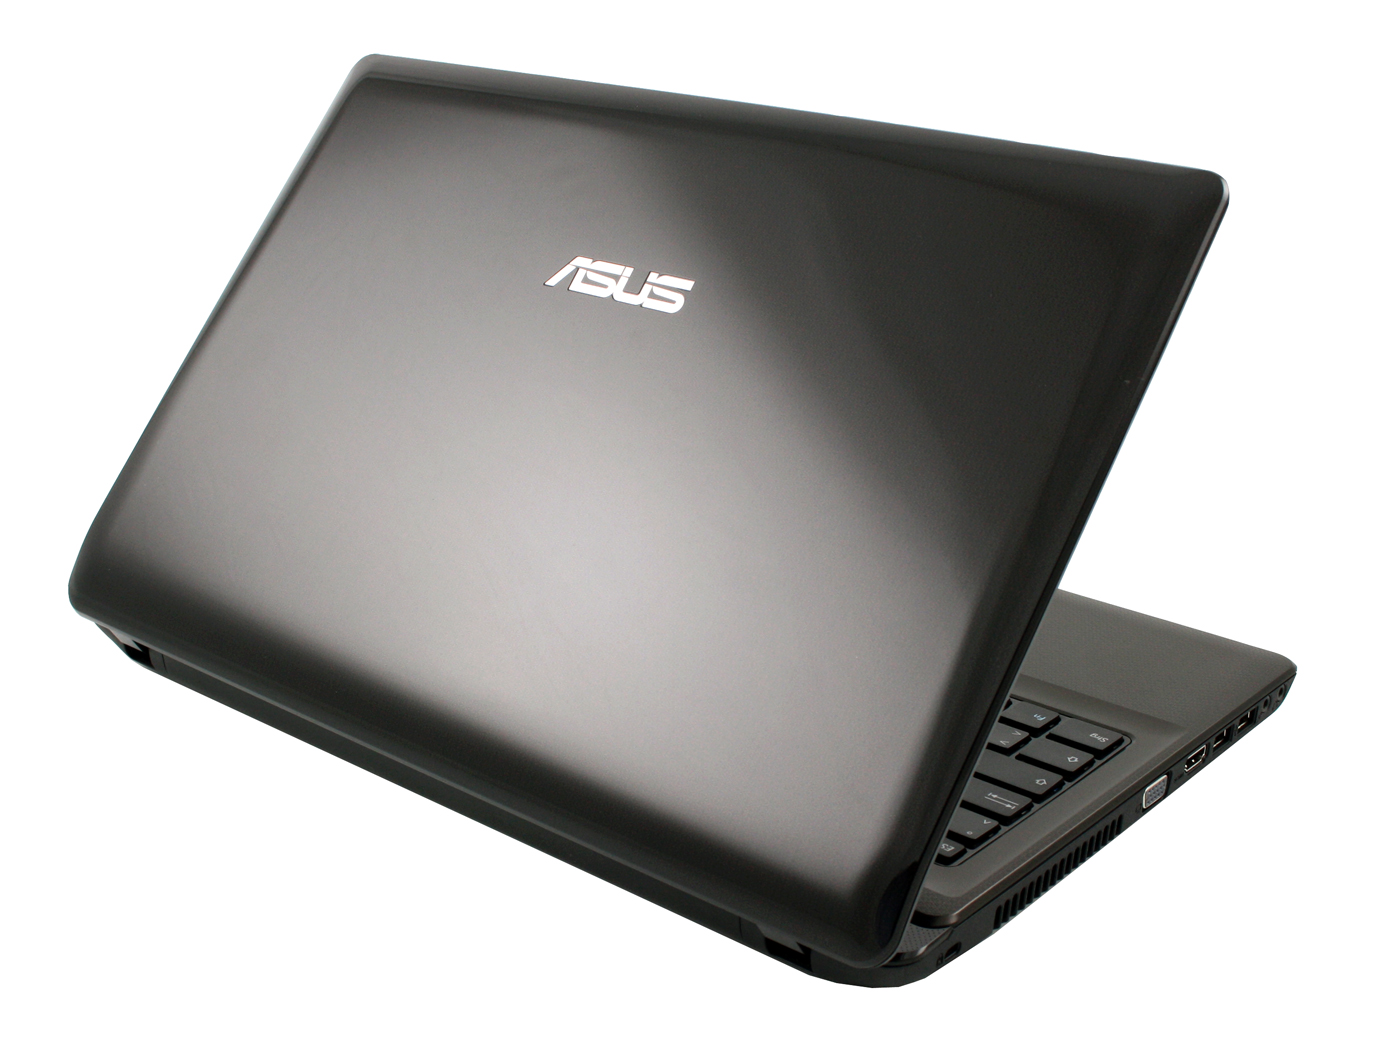 Asus K52JB Notebook ATI VGA Windows 8 X64 Treiber